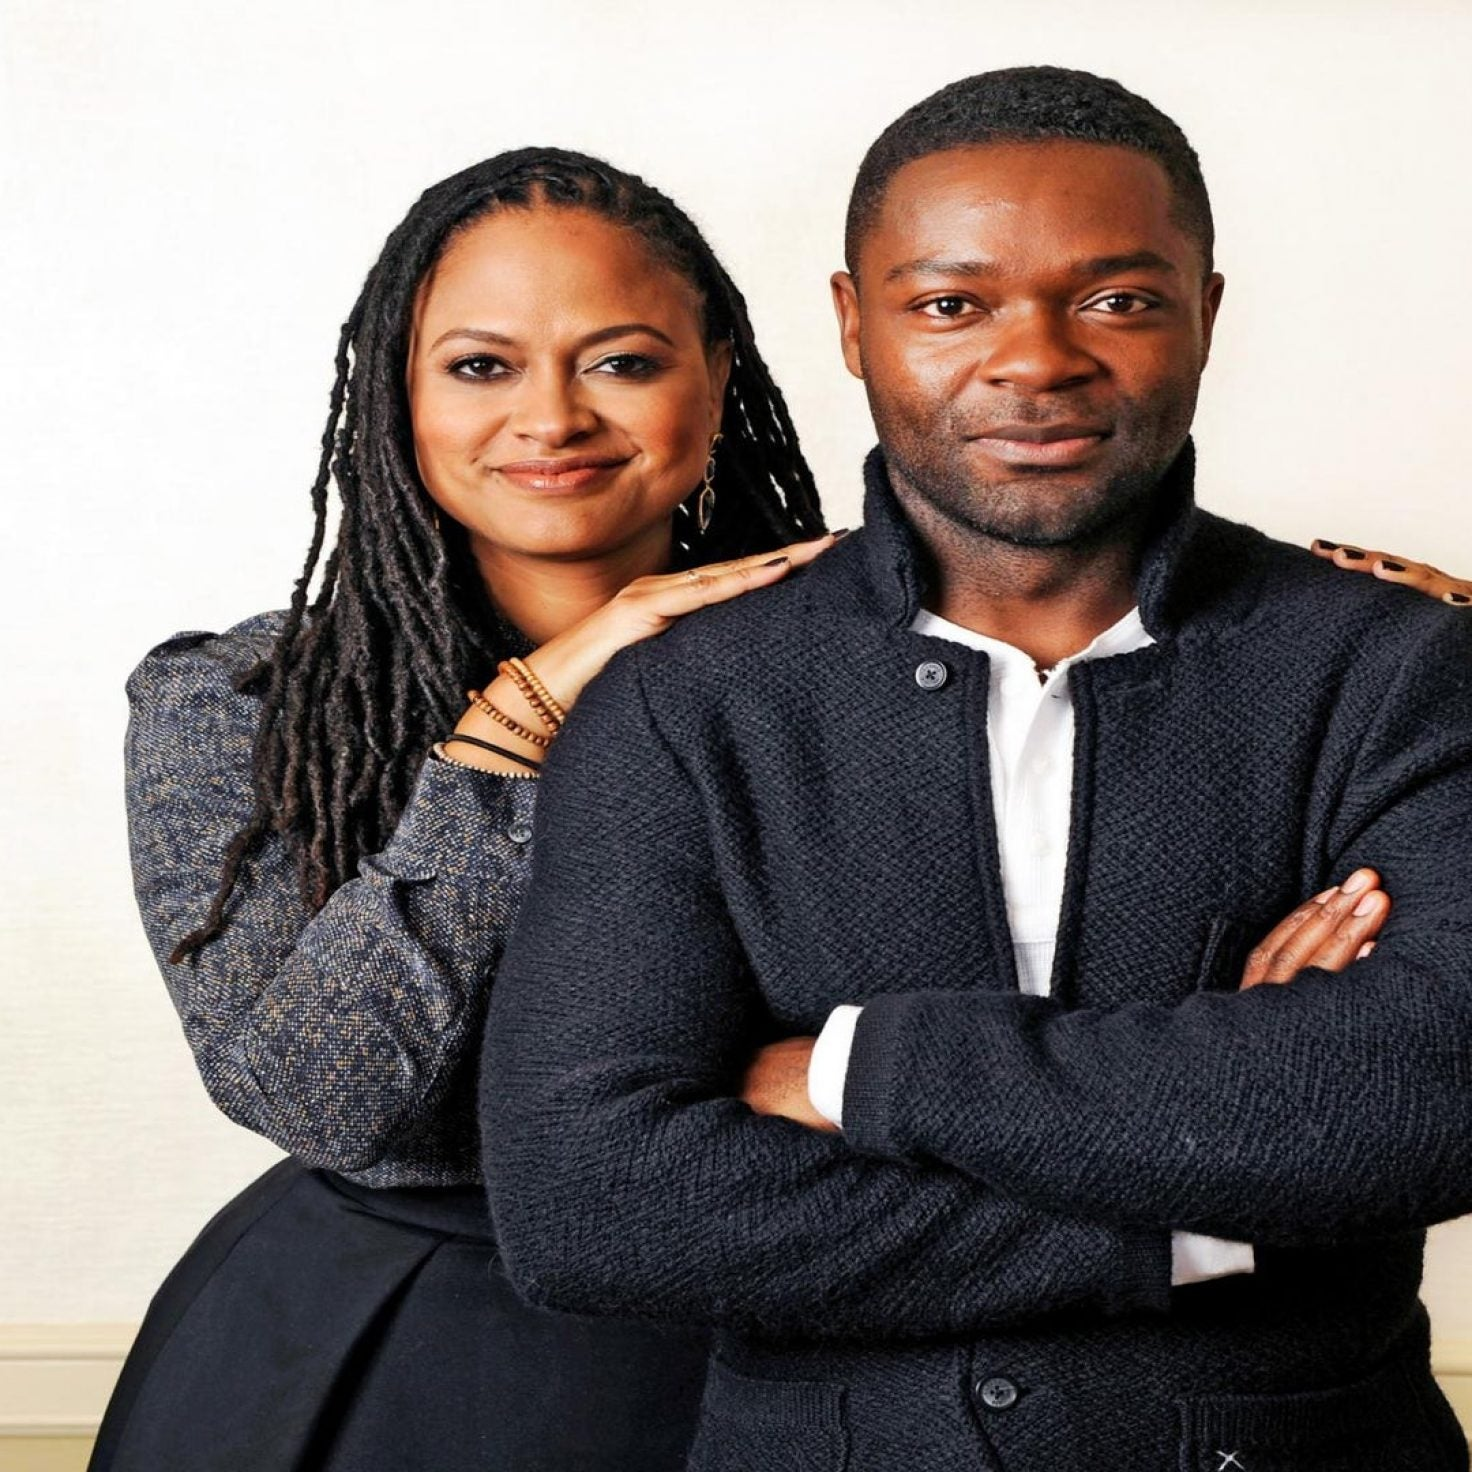 David Oyelowo Reveals The Academy Punished 'Selma' Cast For Wearing 'I Can't Breathe' Shirts